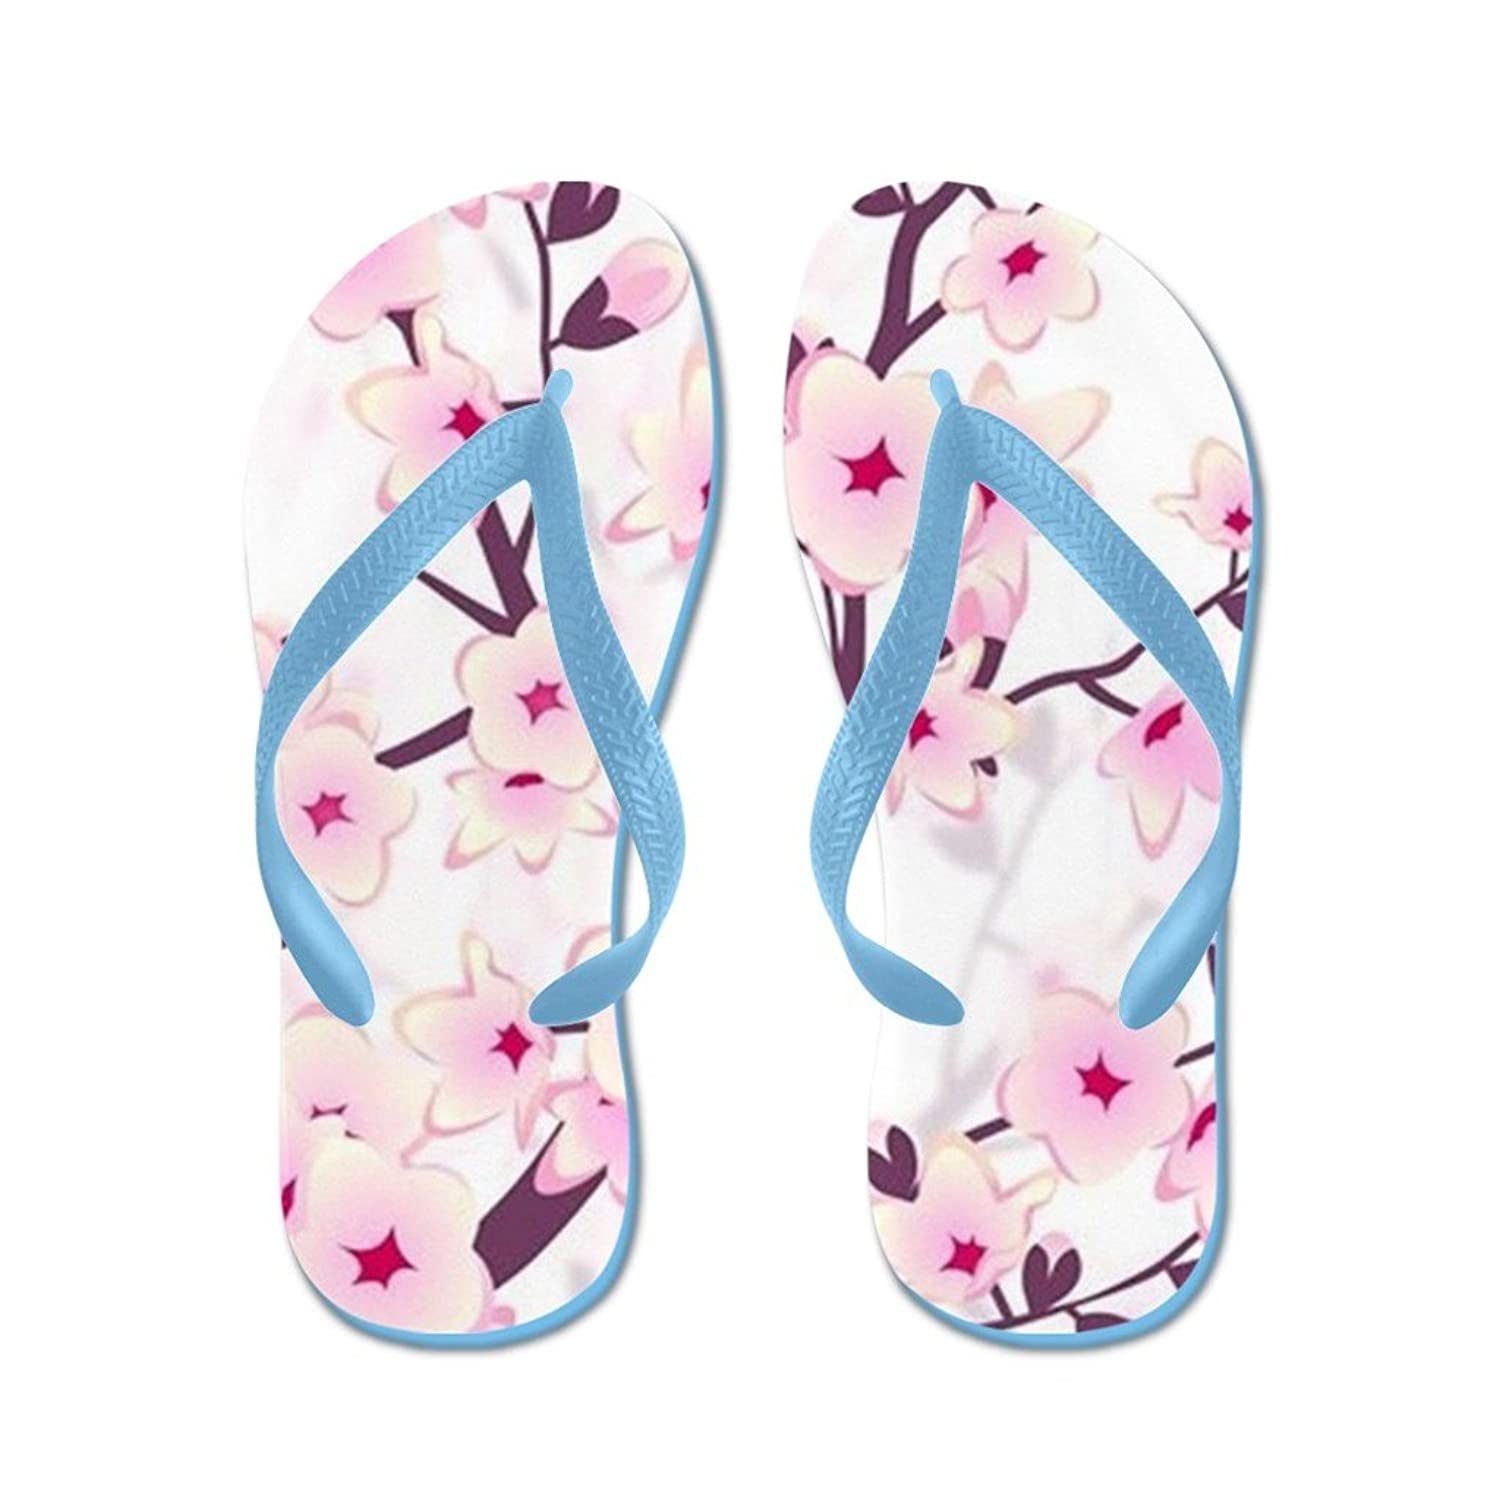 Lplpol Pink Paw Print Flip Flops for Kids and Adult Unisex Beach Sandals Pool Shoes Party Slippers